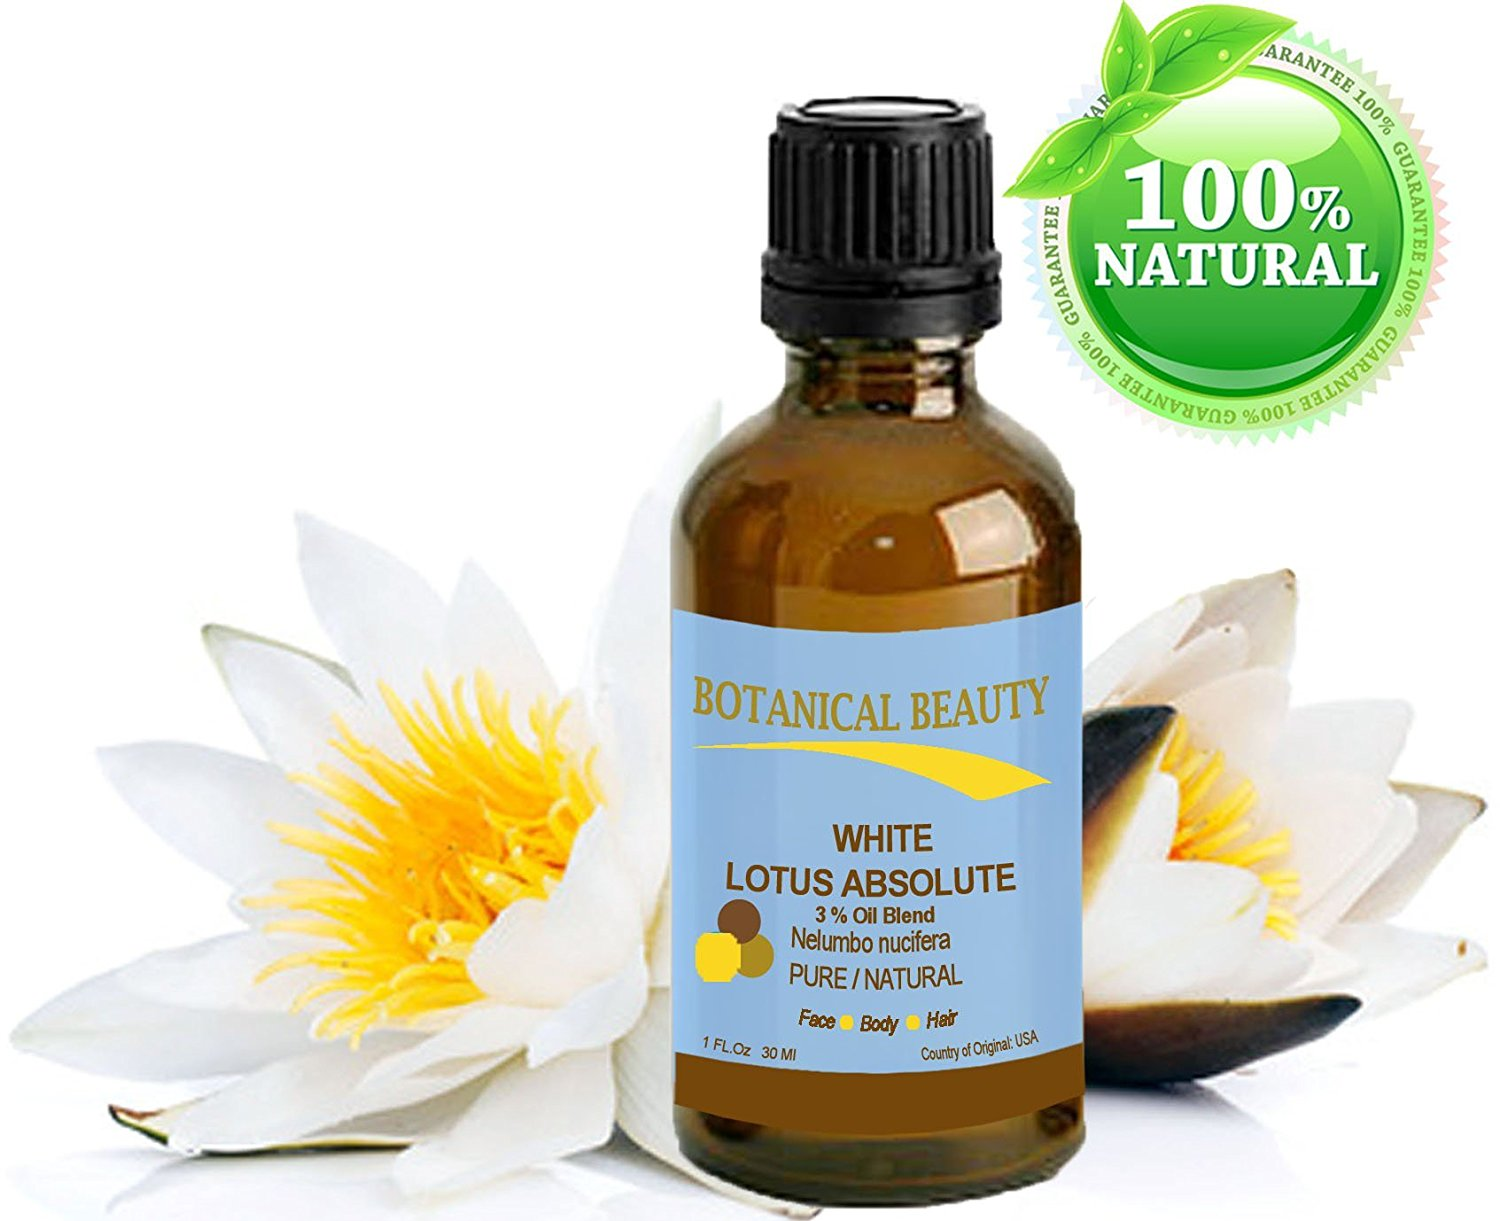 "WHITE LOTUS ABSOLUTE Pure / Natural 3% Oil Blend. 1 fl oz - 30ml. ""One of the best anti aging oils to regenerate and restore skin strength. The White Lotus flower is a symbol of awakening and the Goddess of Wealth""."